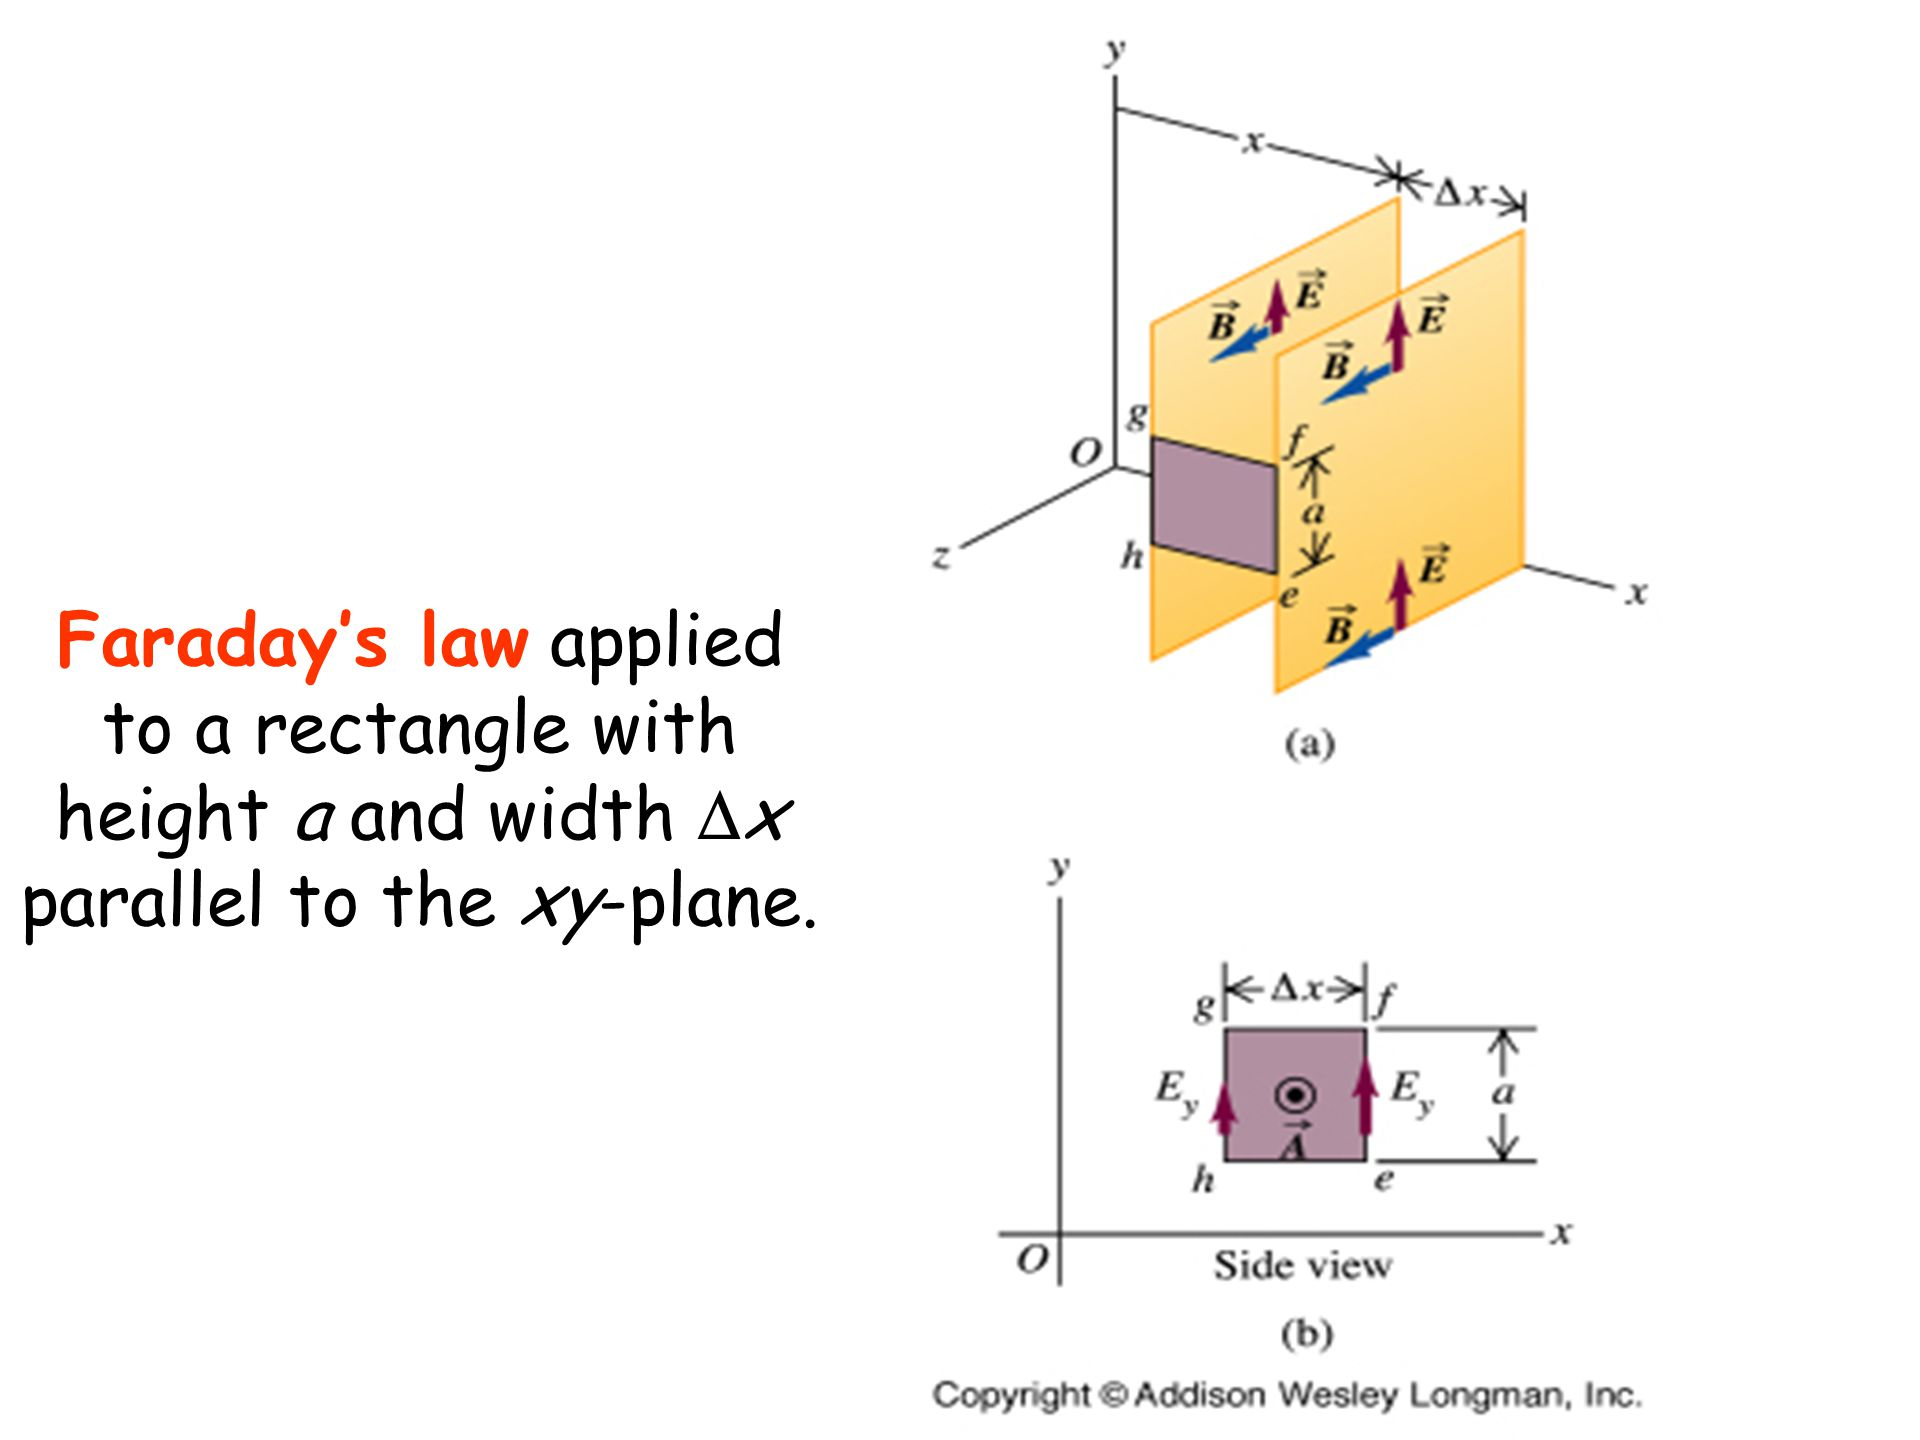 Faraday's law applied to a rectangle with height a and width Dx parallel to the xy-plane.